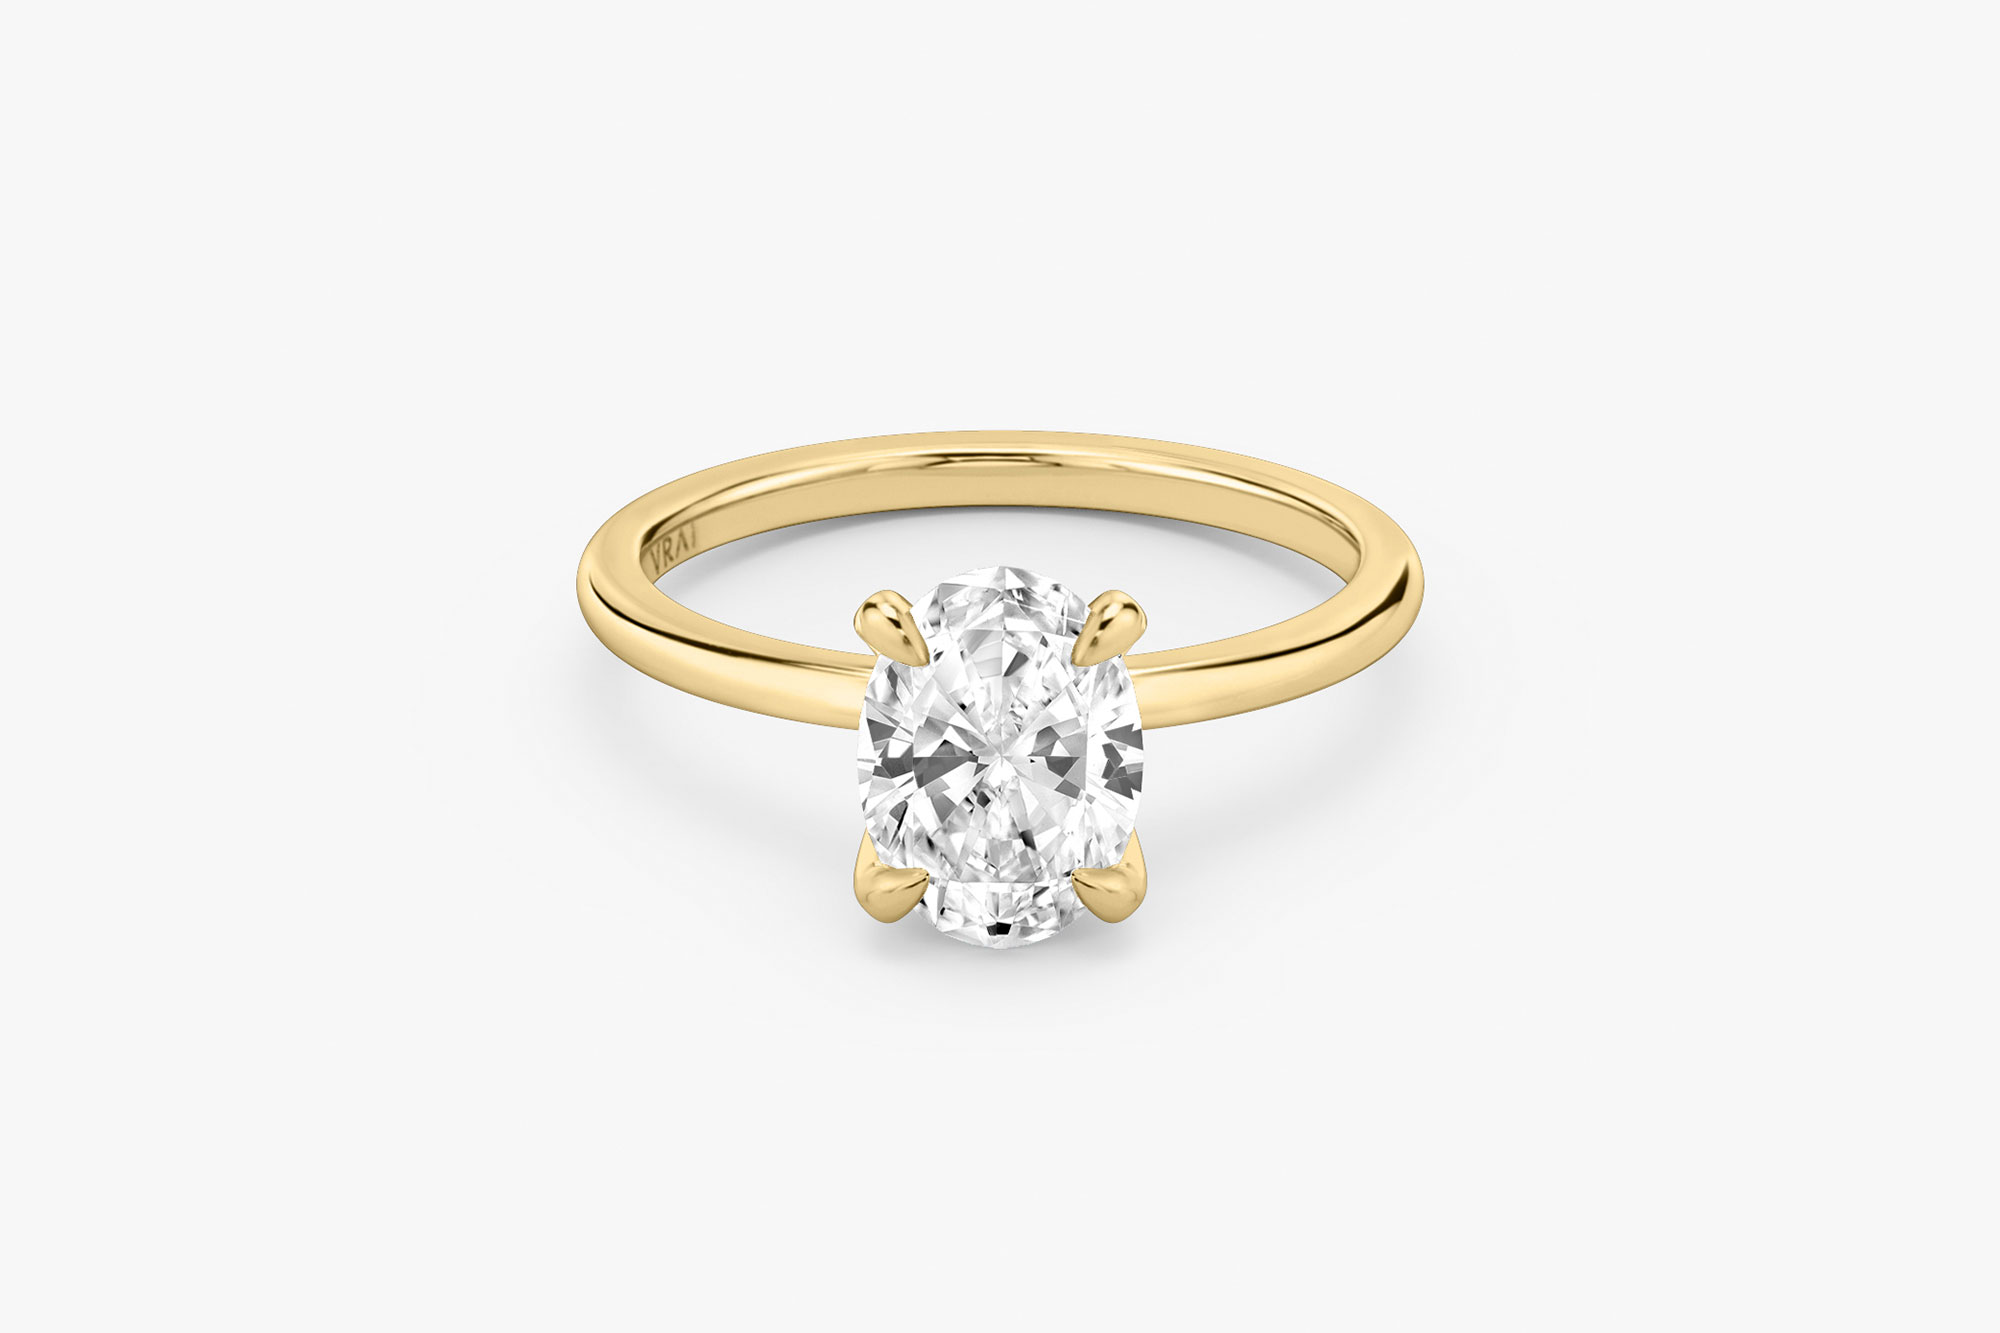 The Classic solitaire in 18k yellow gold with an oval cut diamond